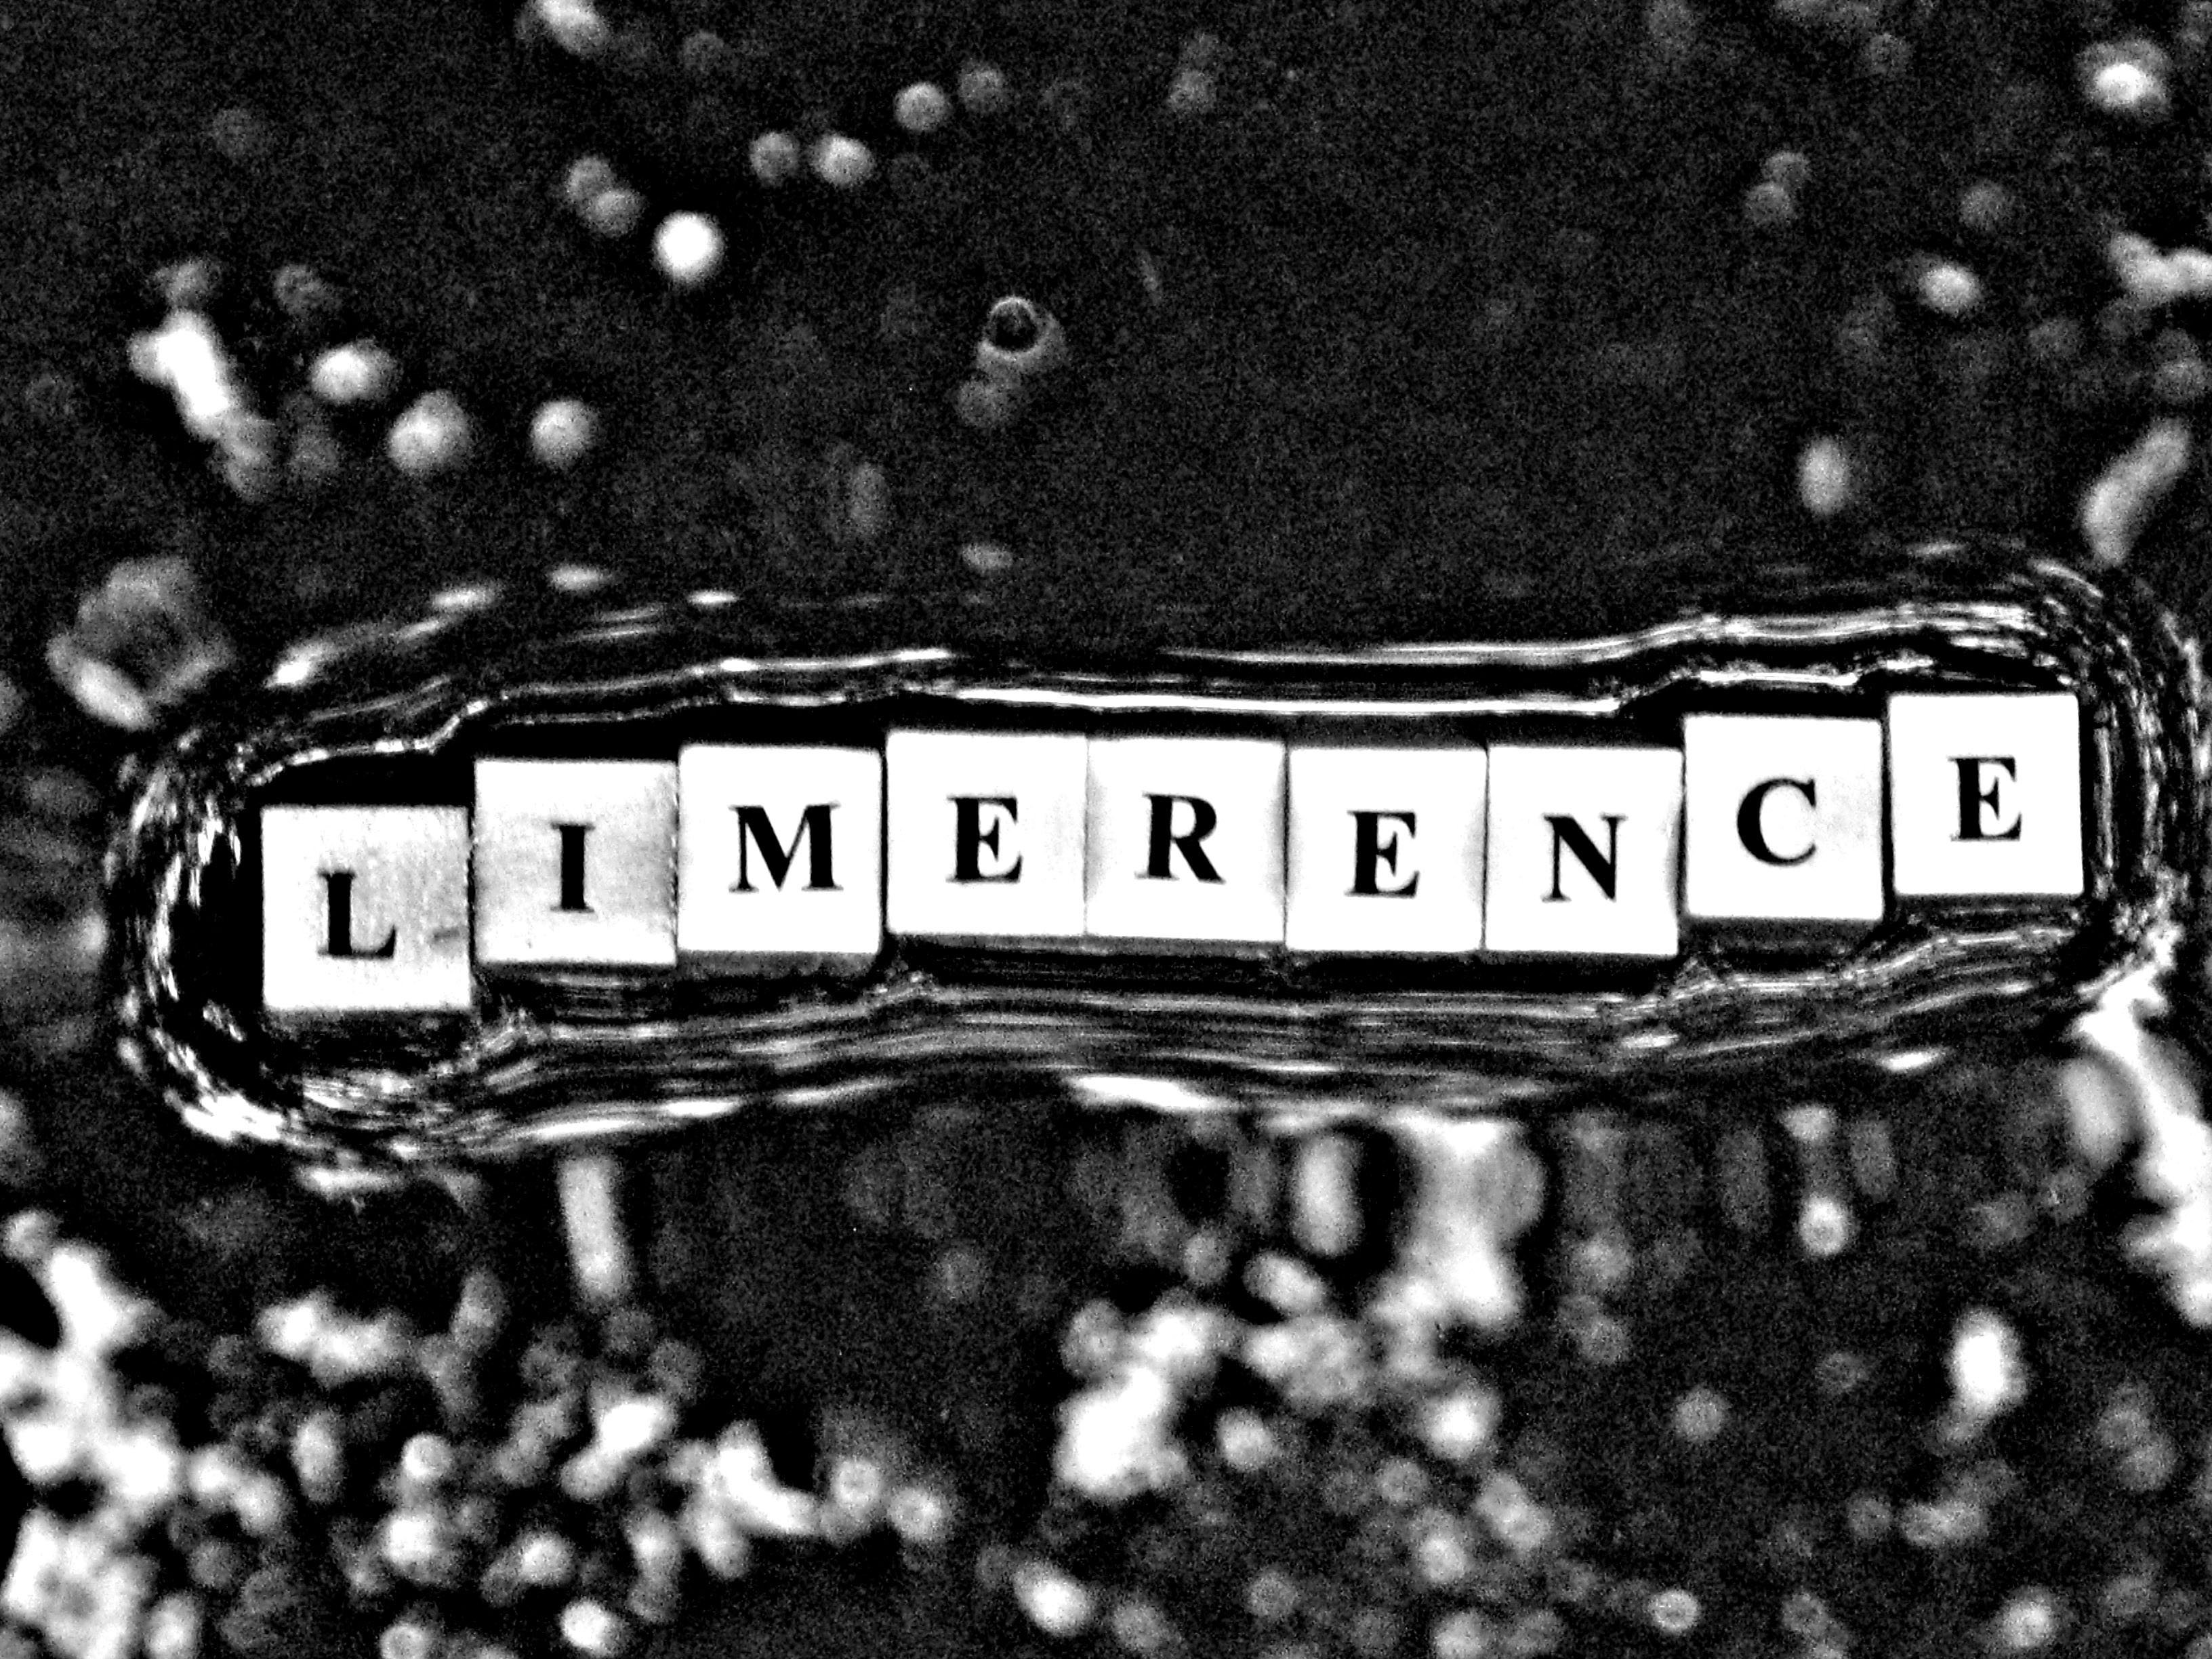 I'm such a nerd: the science of limerence | Half an ABC